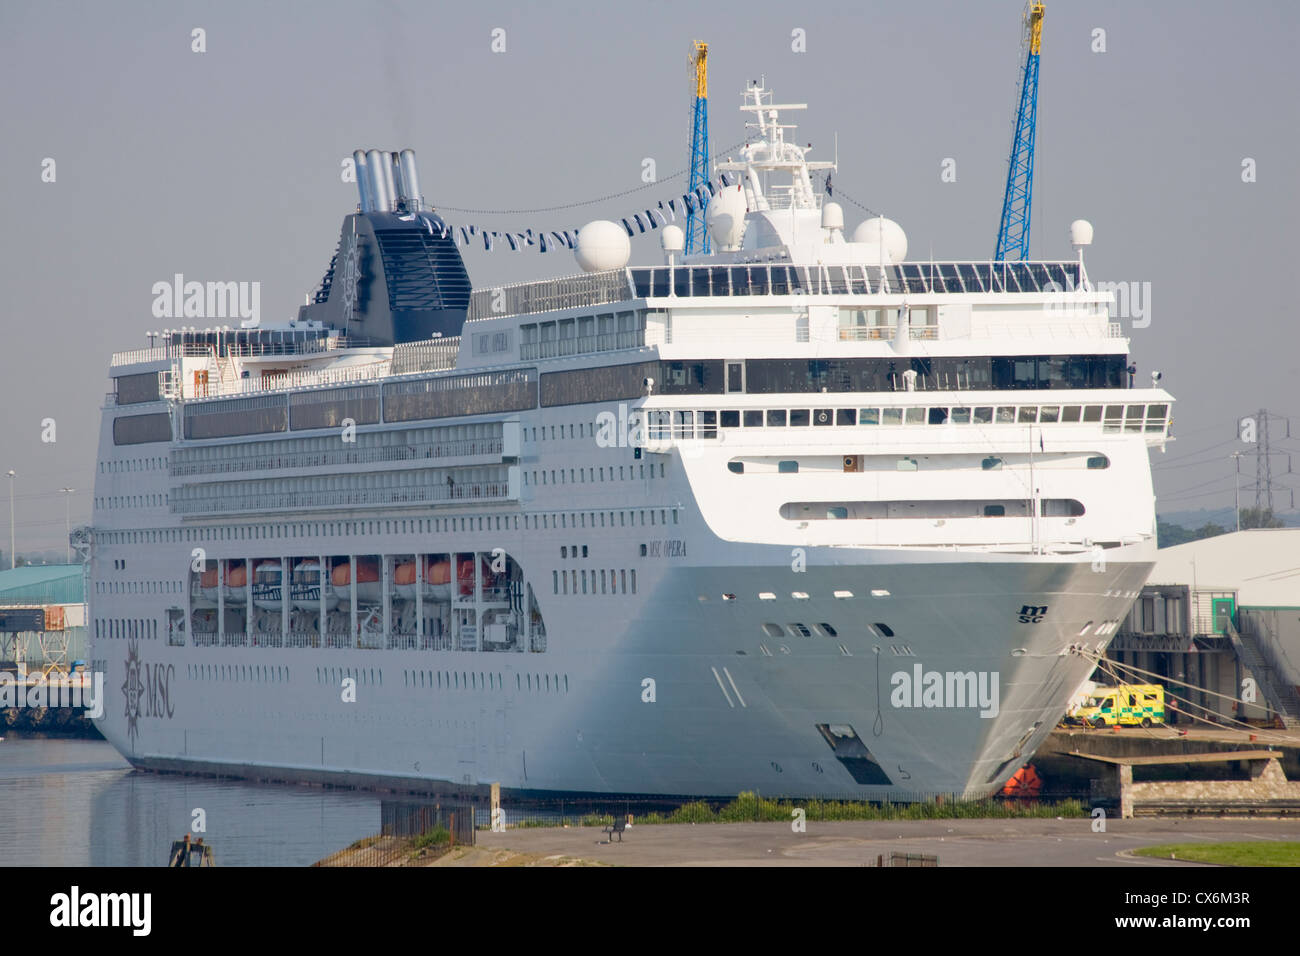 MSC Opera cruise ship docked in Southampton - Stock Image